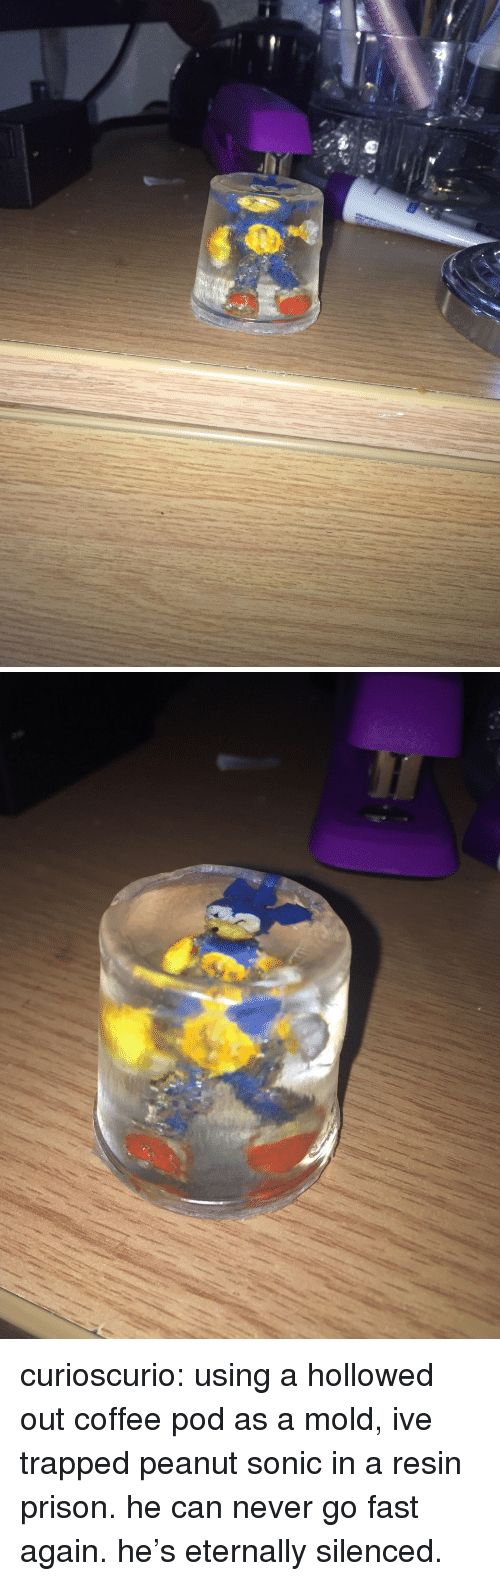 Tumblr, Prison, and Blog: curioscurio: using a hollowed out coffee pod as a mold, ive trapped peanut sonic in a resin prison. he can never go fast again. he's eternally silenced.